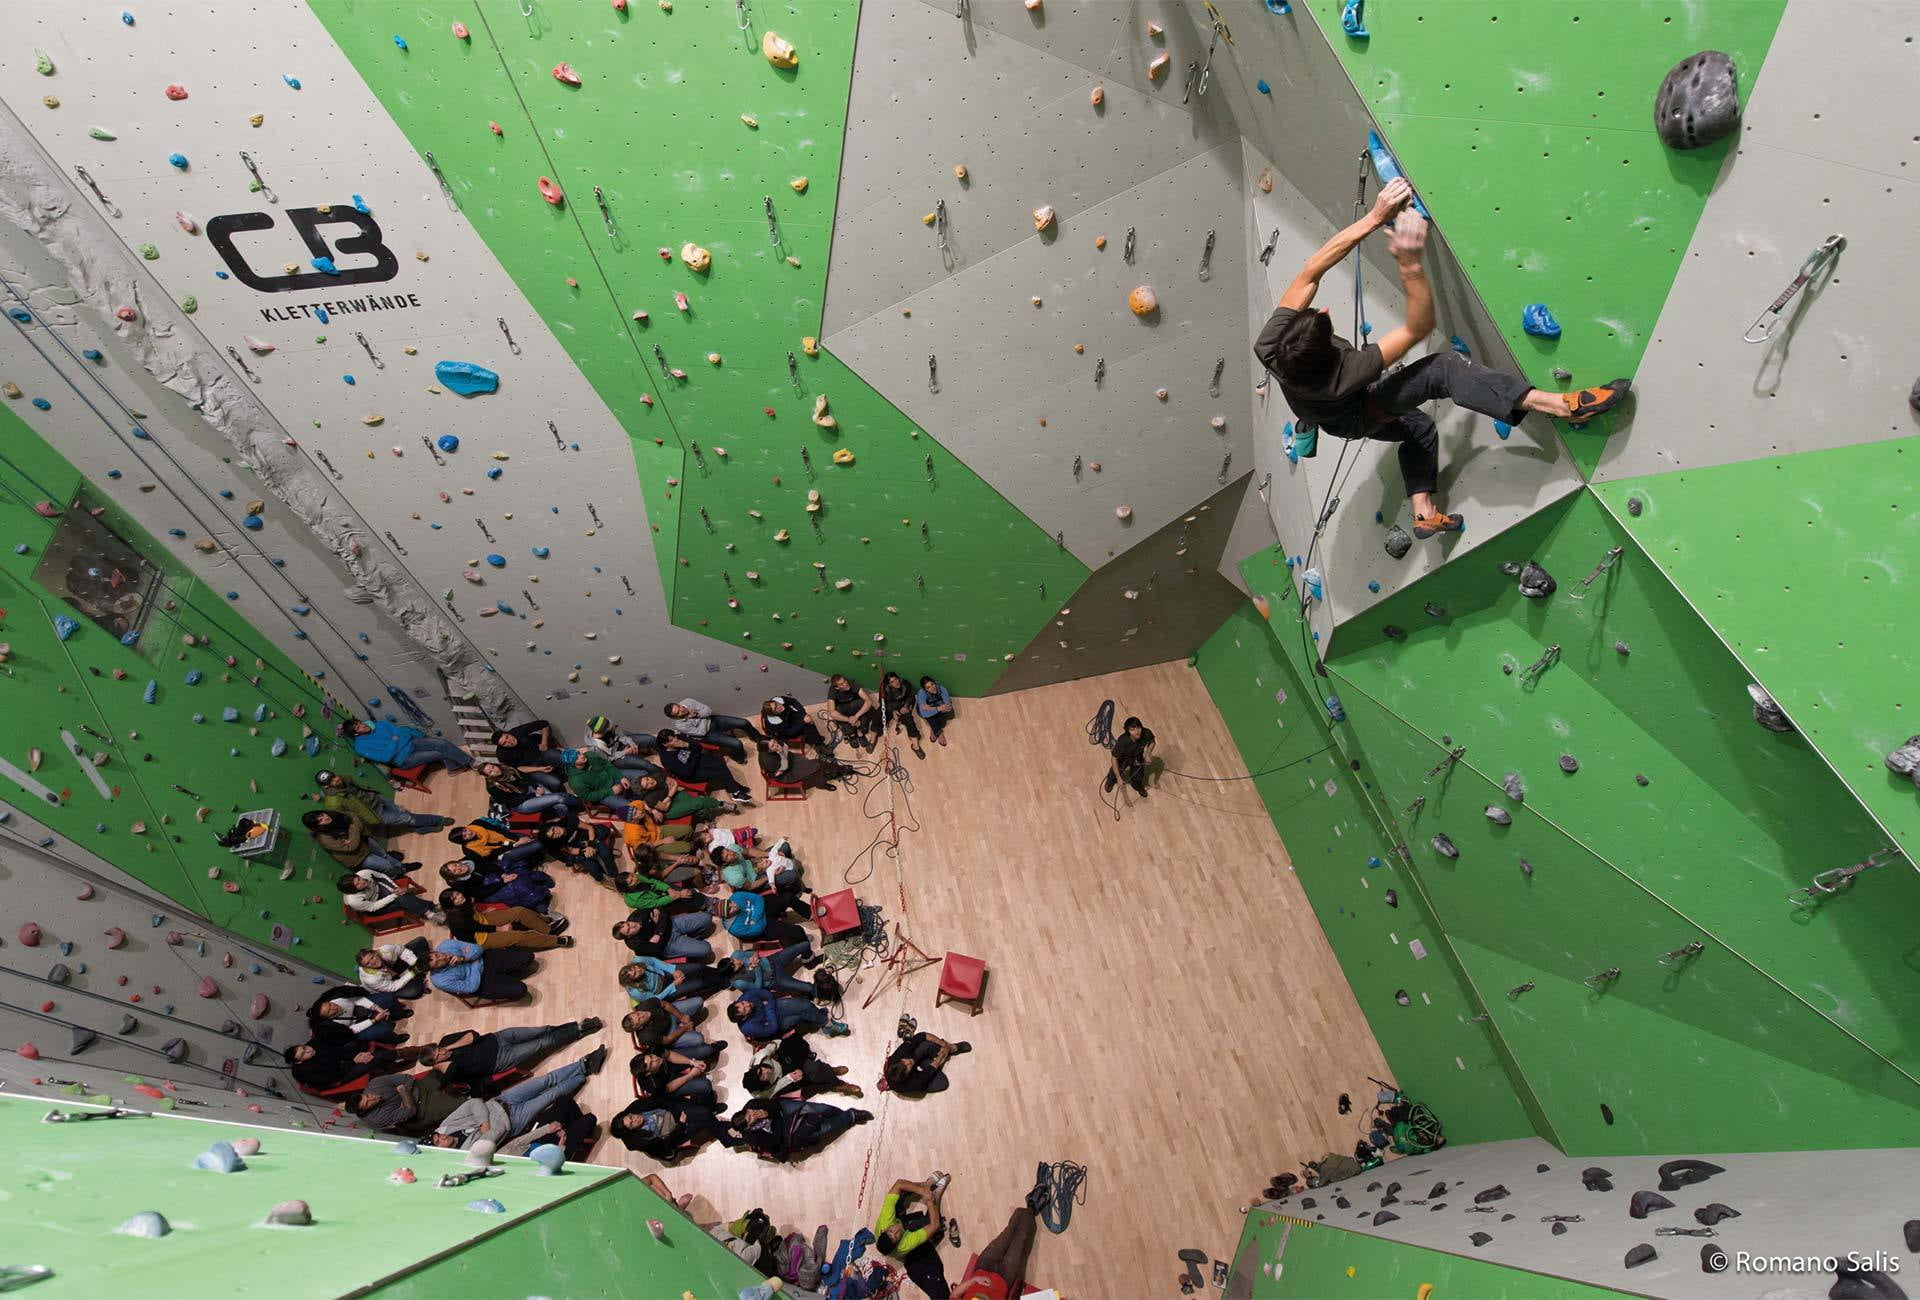 Climbing and bouldering hall, S-chanf